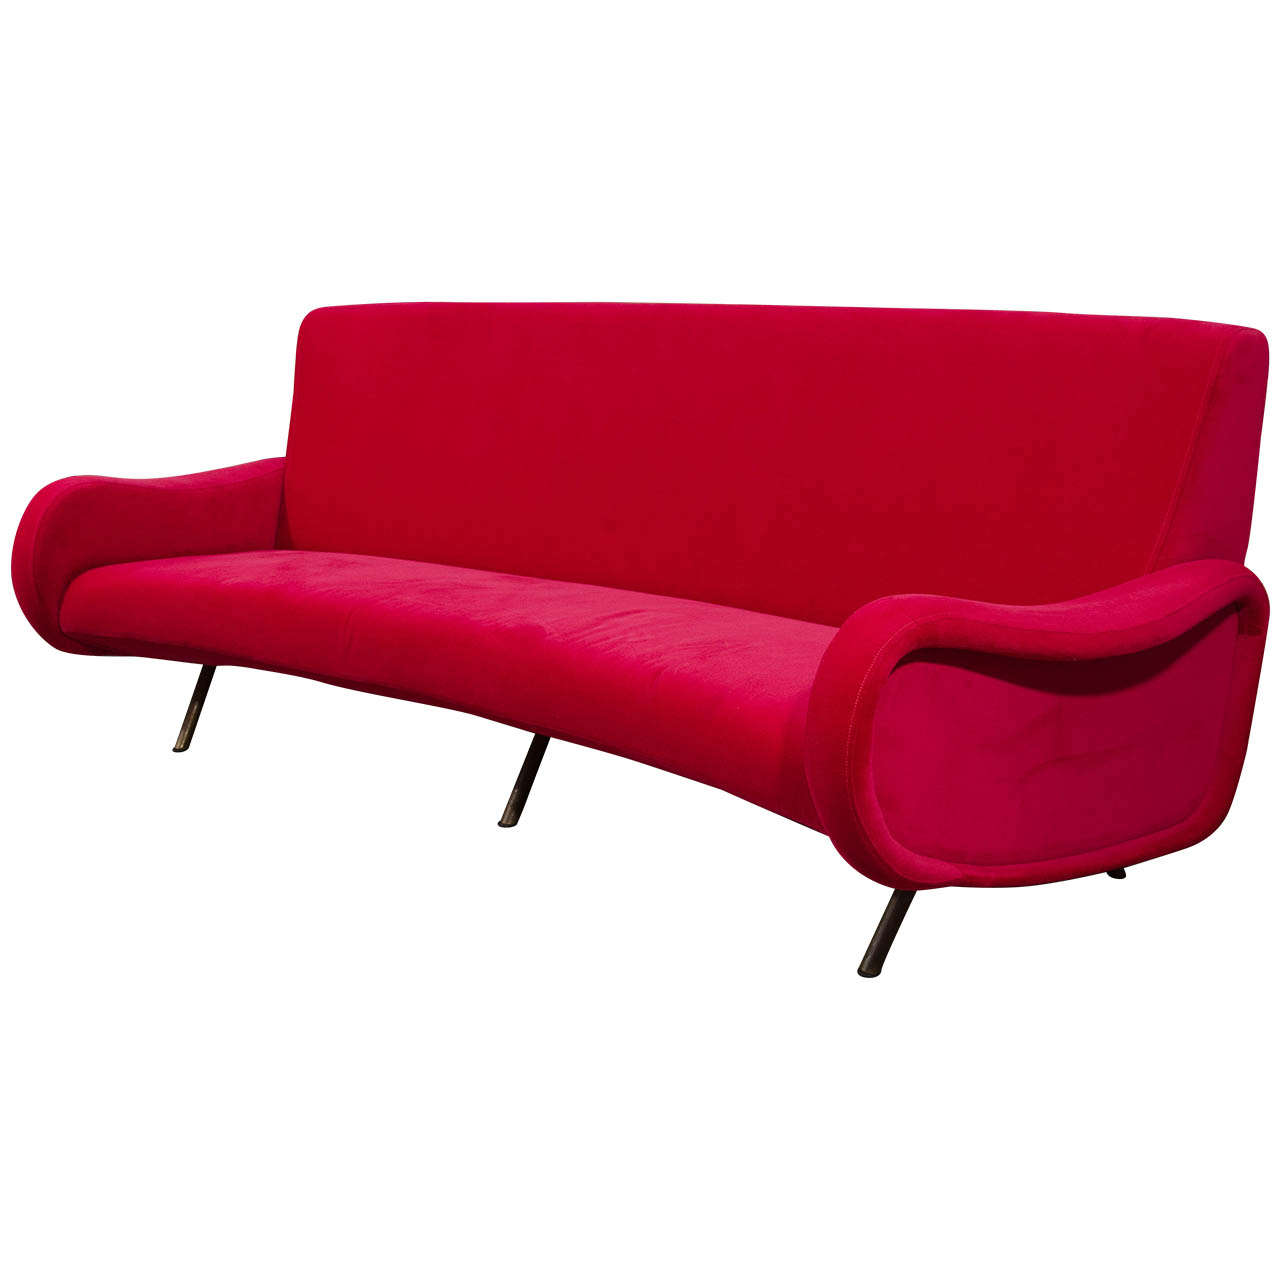 Marco Zanuso Lady Sofa For Sale